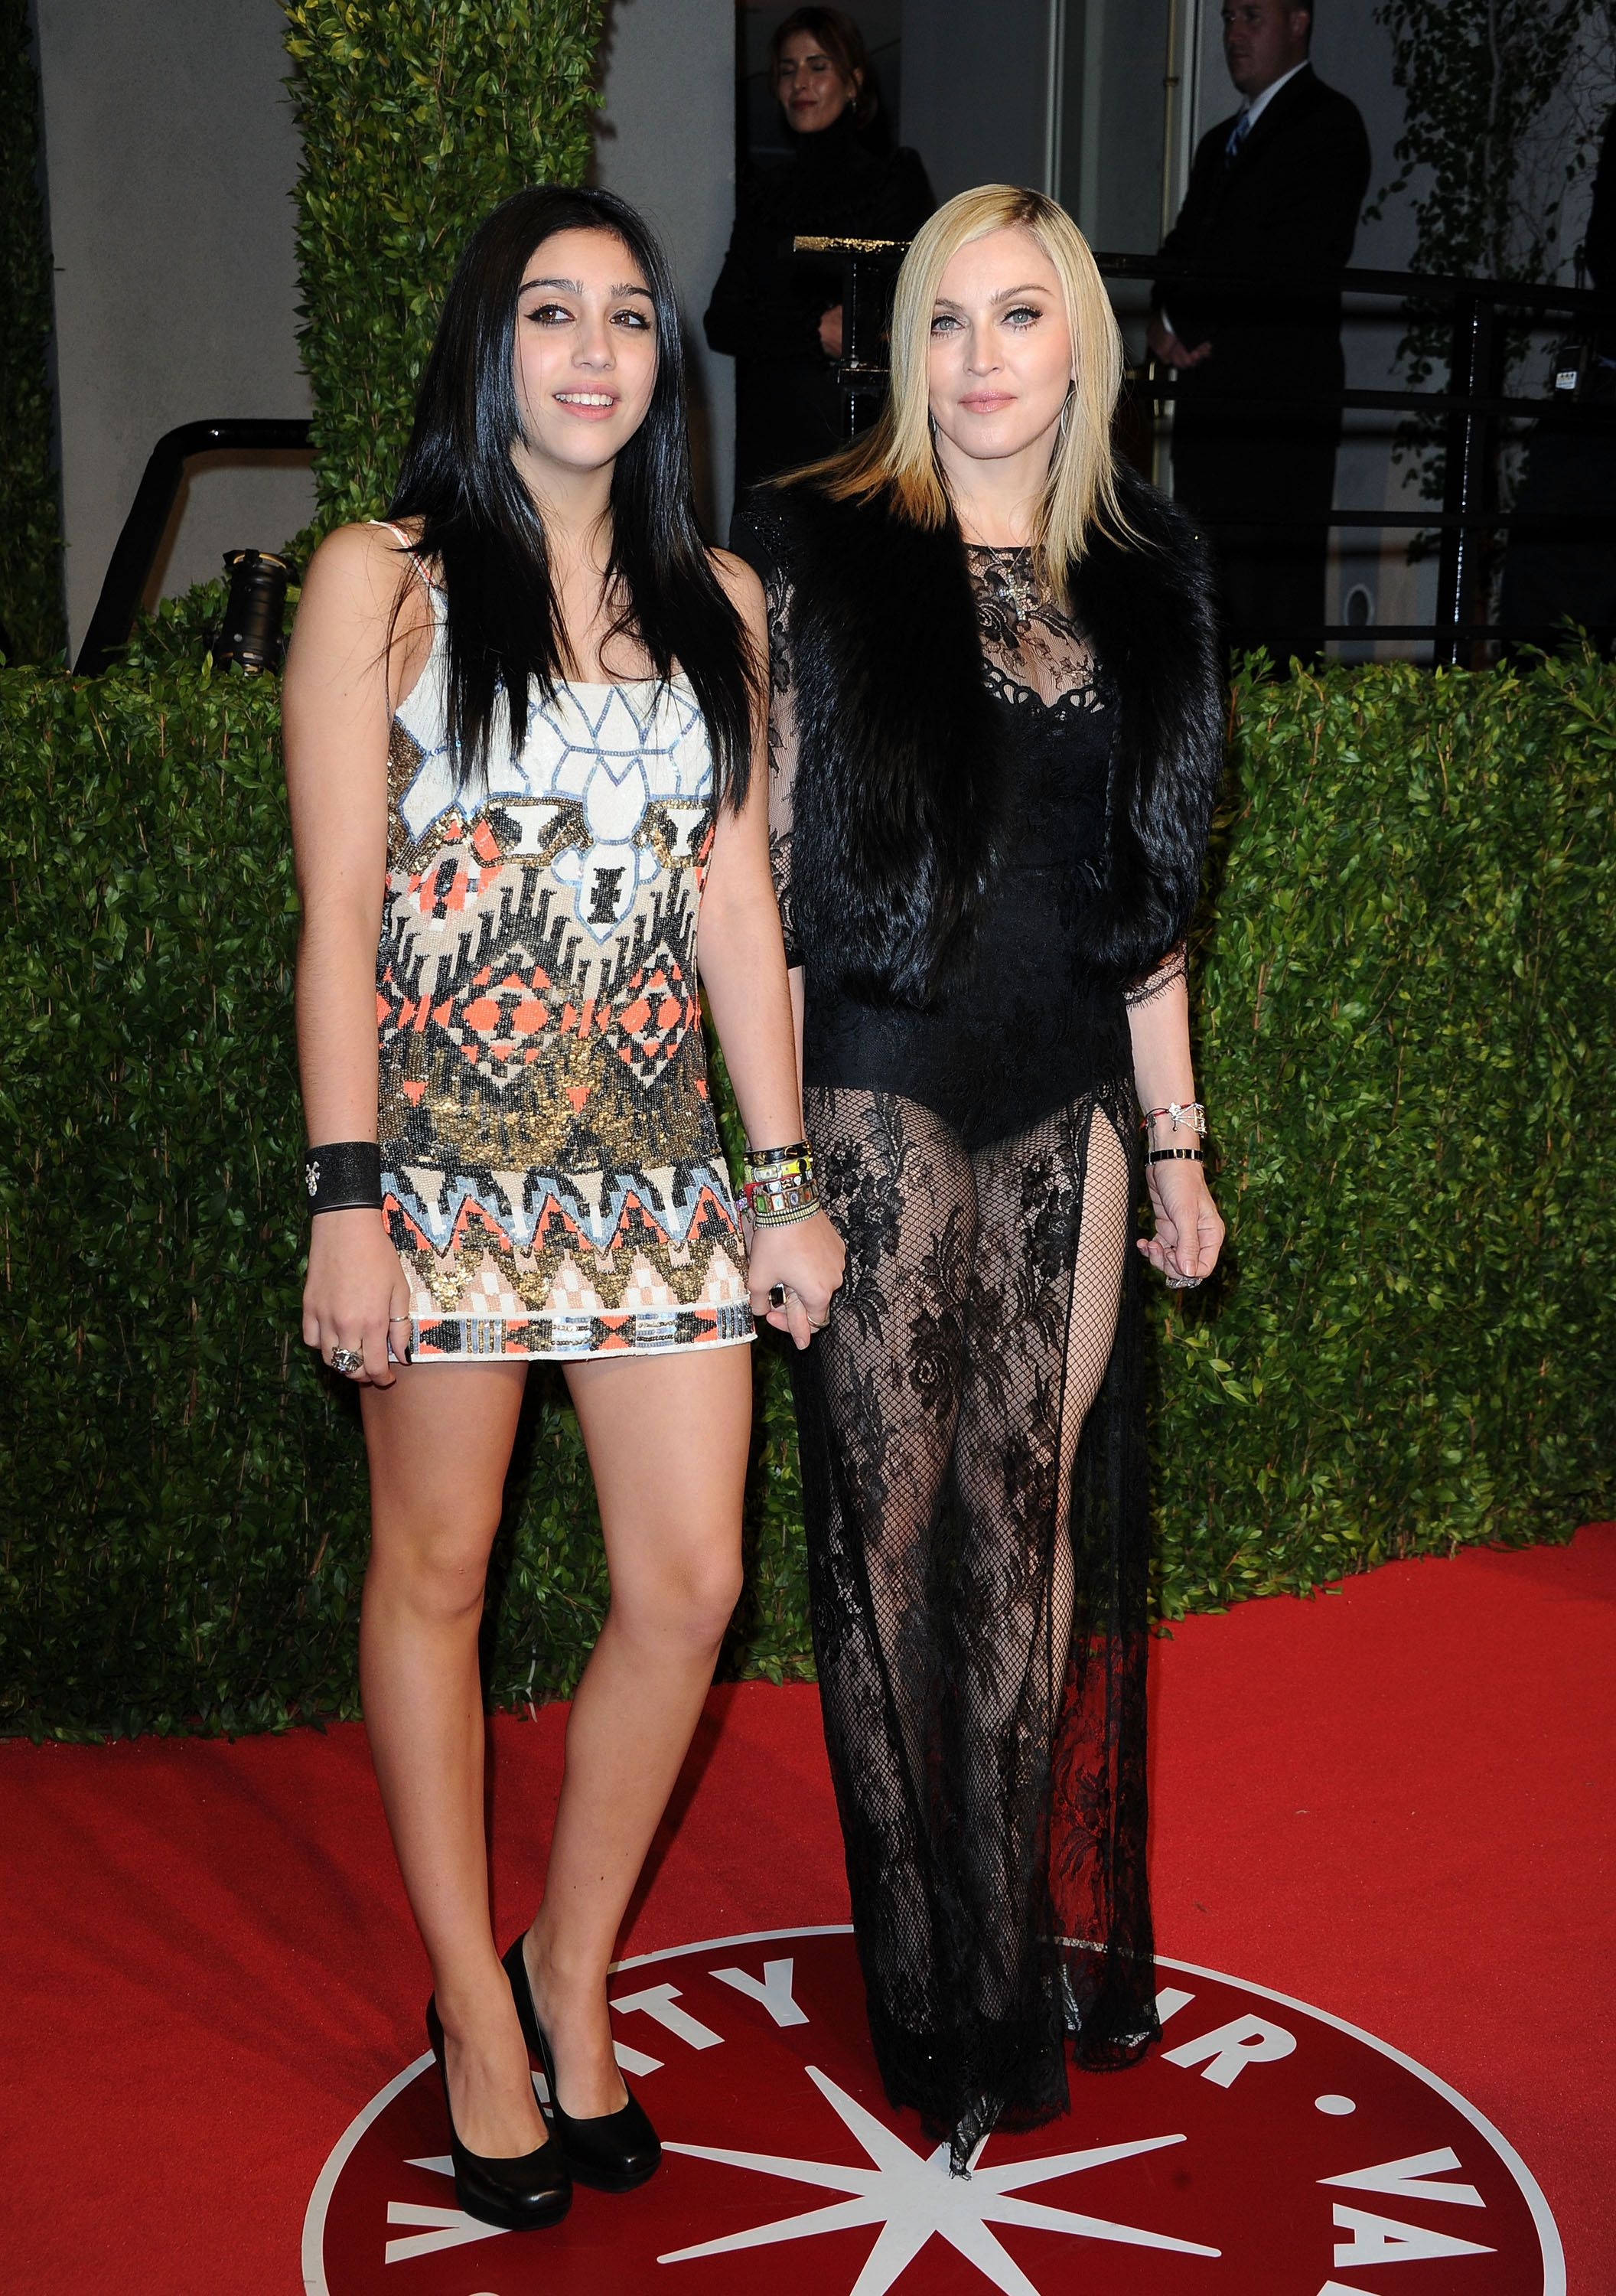 Lourdes Leon and Madonna at the Vanity Fair Oscar party hosted by Graydon Carter held at Sunset Tower on February 27, 2011 | Photo: Getty Images